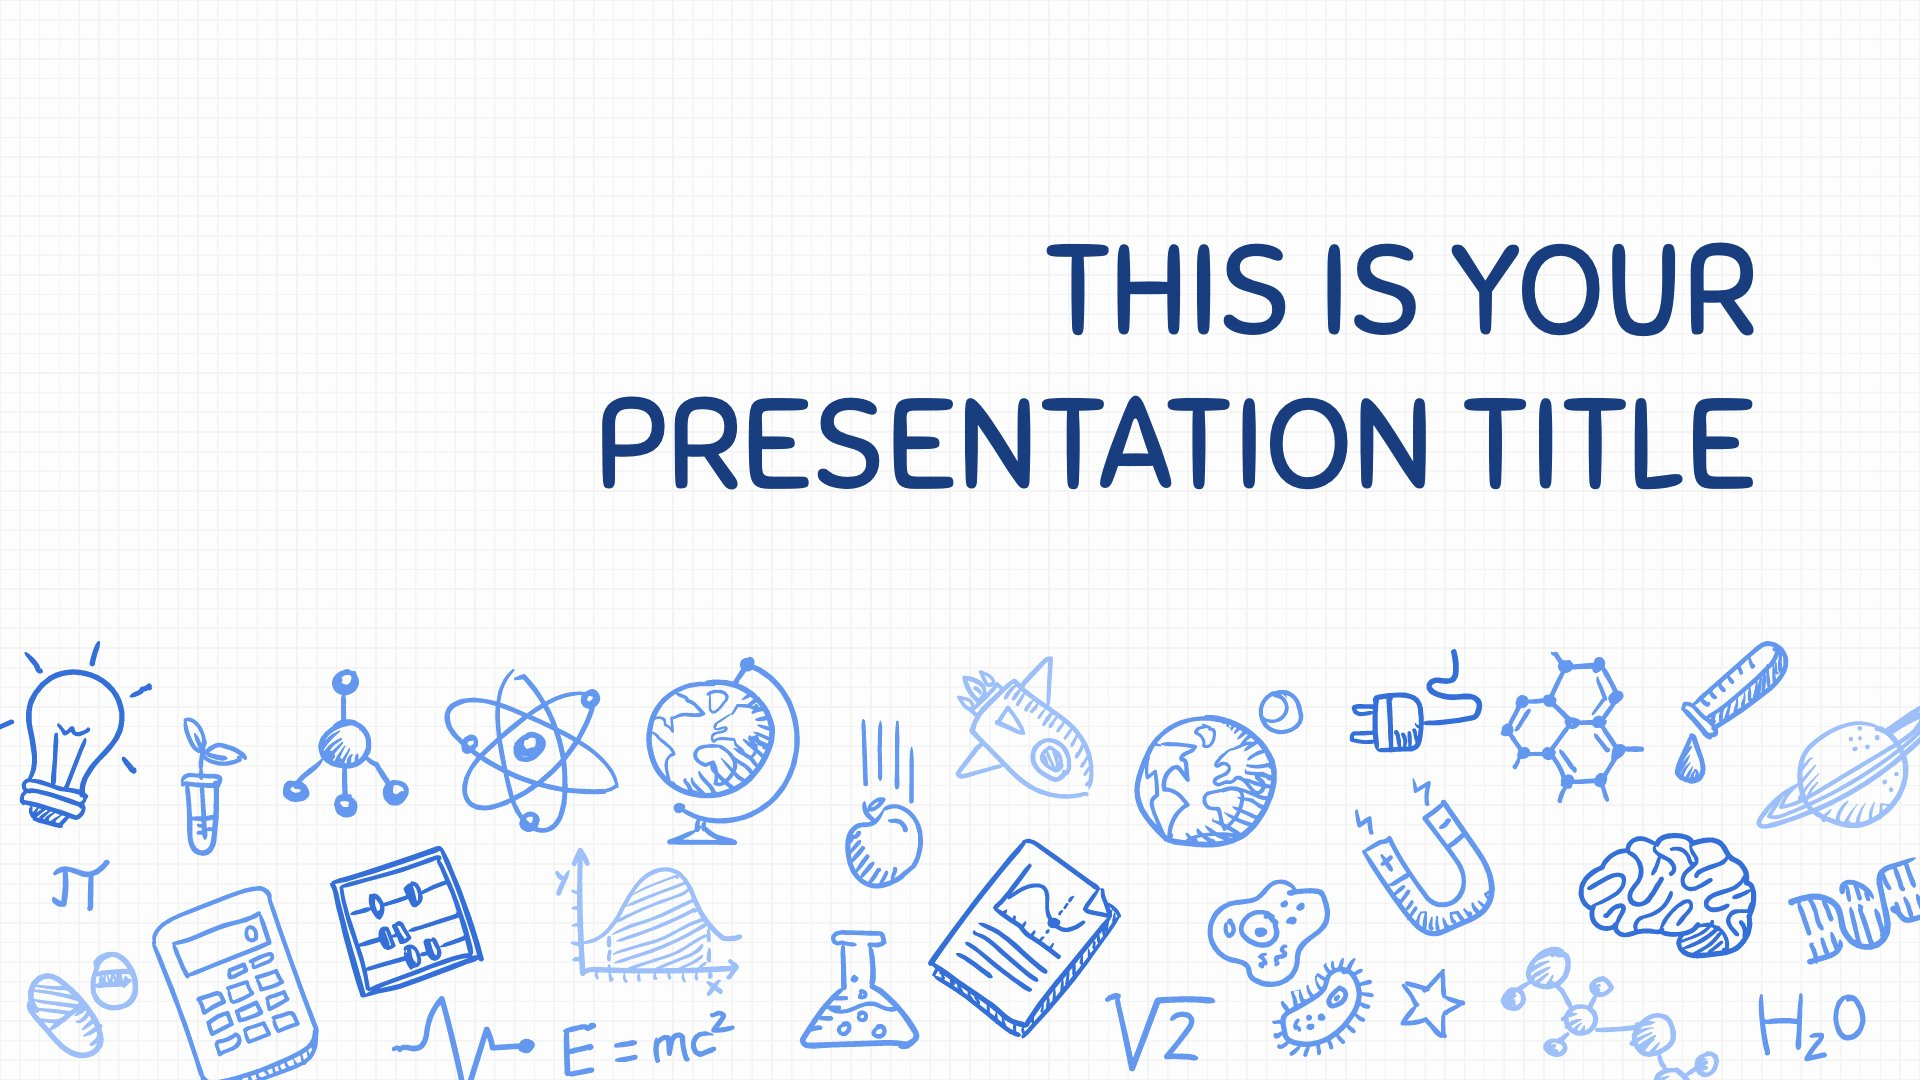 Science Power Point Template Inspirational Free Playful Powerpoint Template or Google Slides theme with Science Design